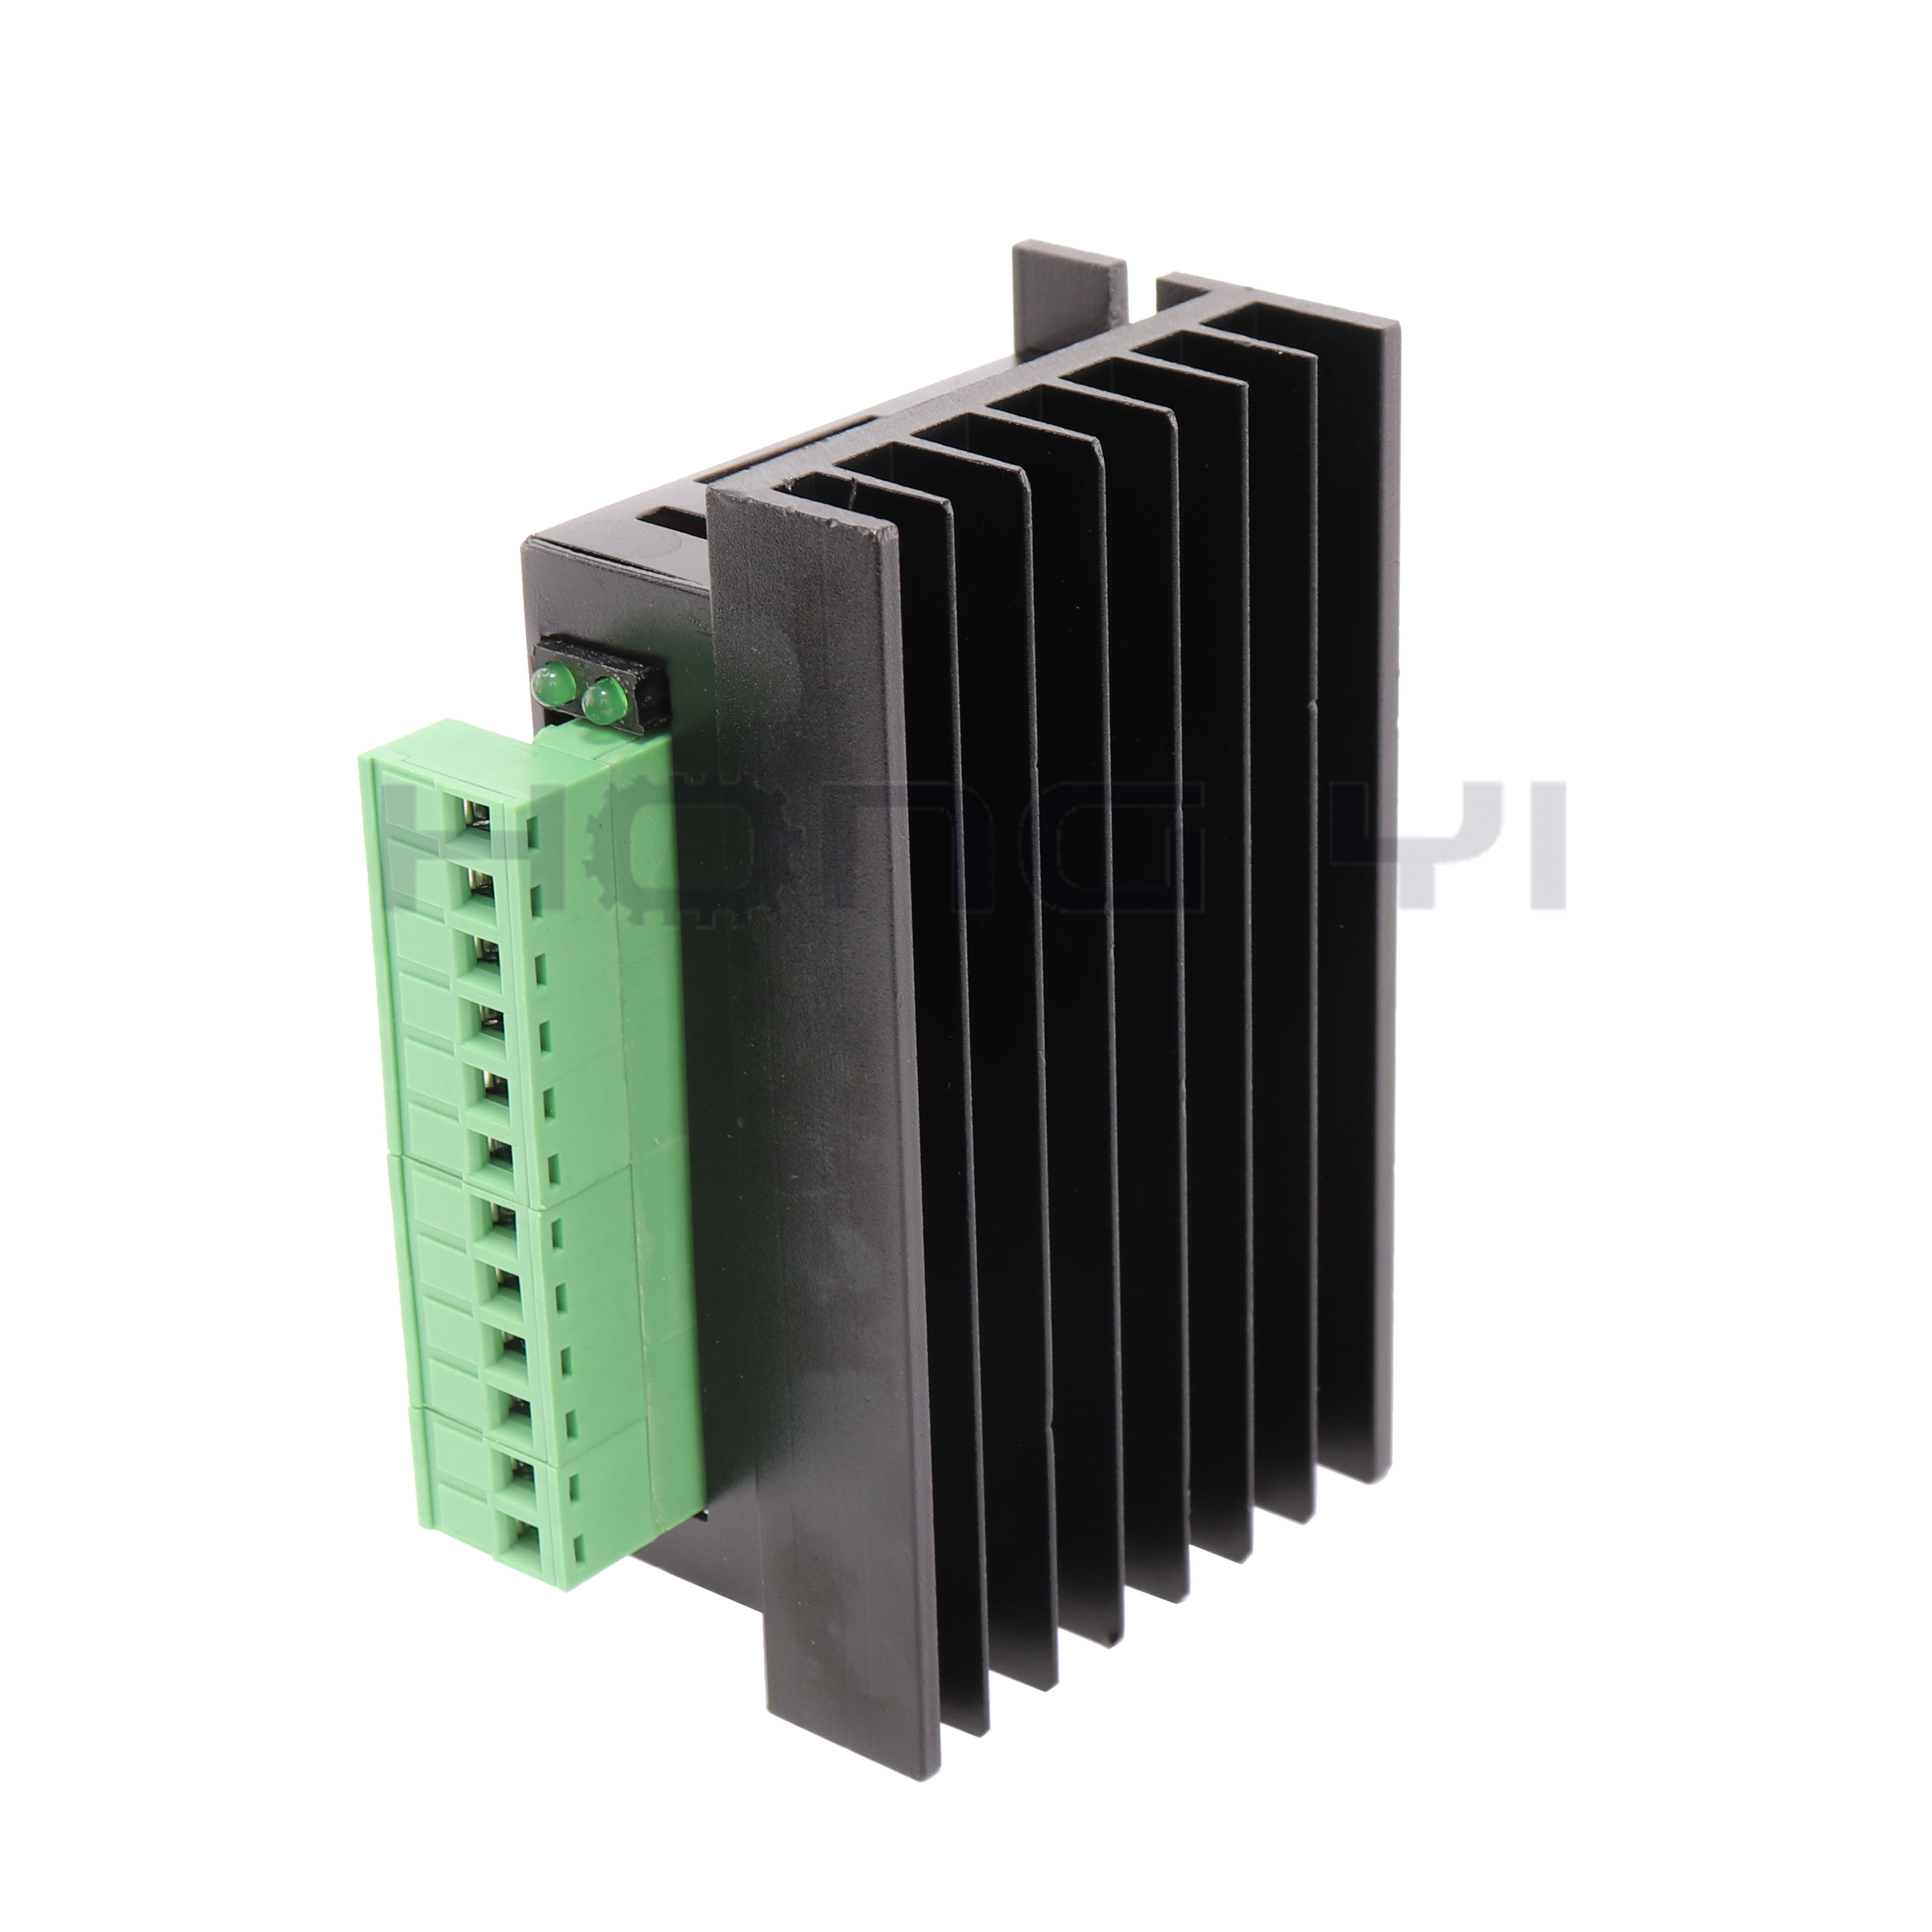 50pcs  CNC Single Axis 4A TB6600 Stepper Motor Drivers Controller 9 42VDC Milling Kits-in Motor Driver from Home Improvement    3